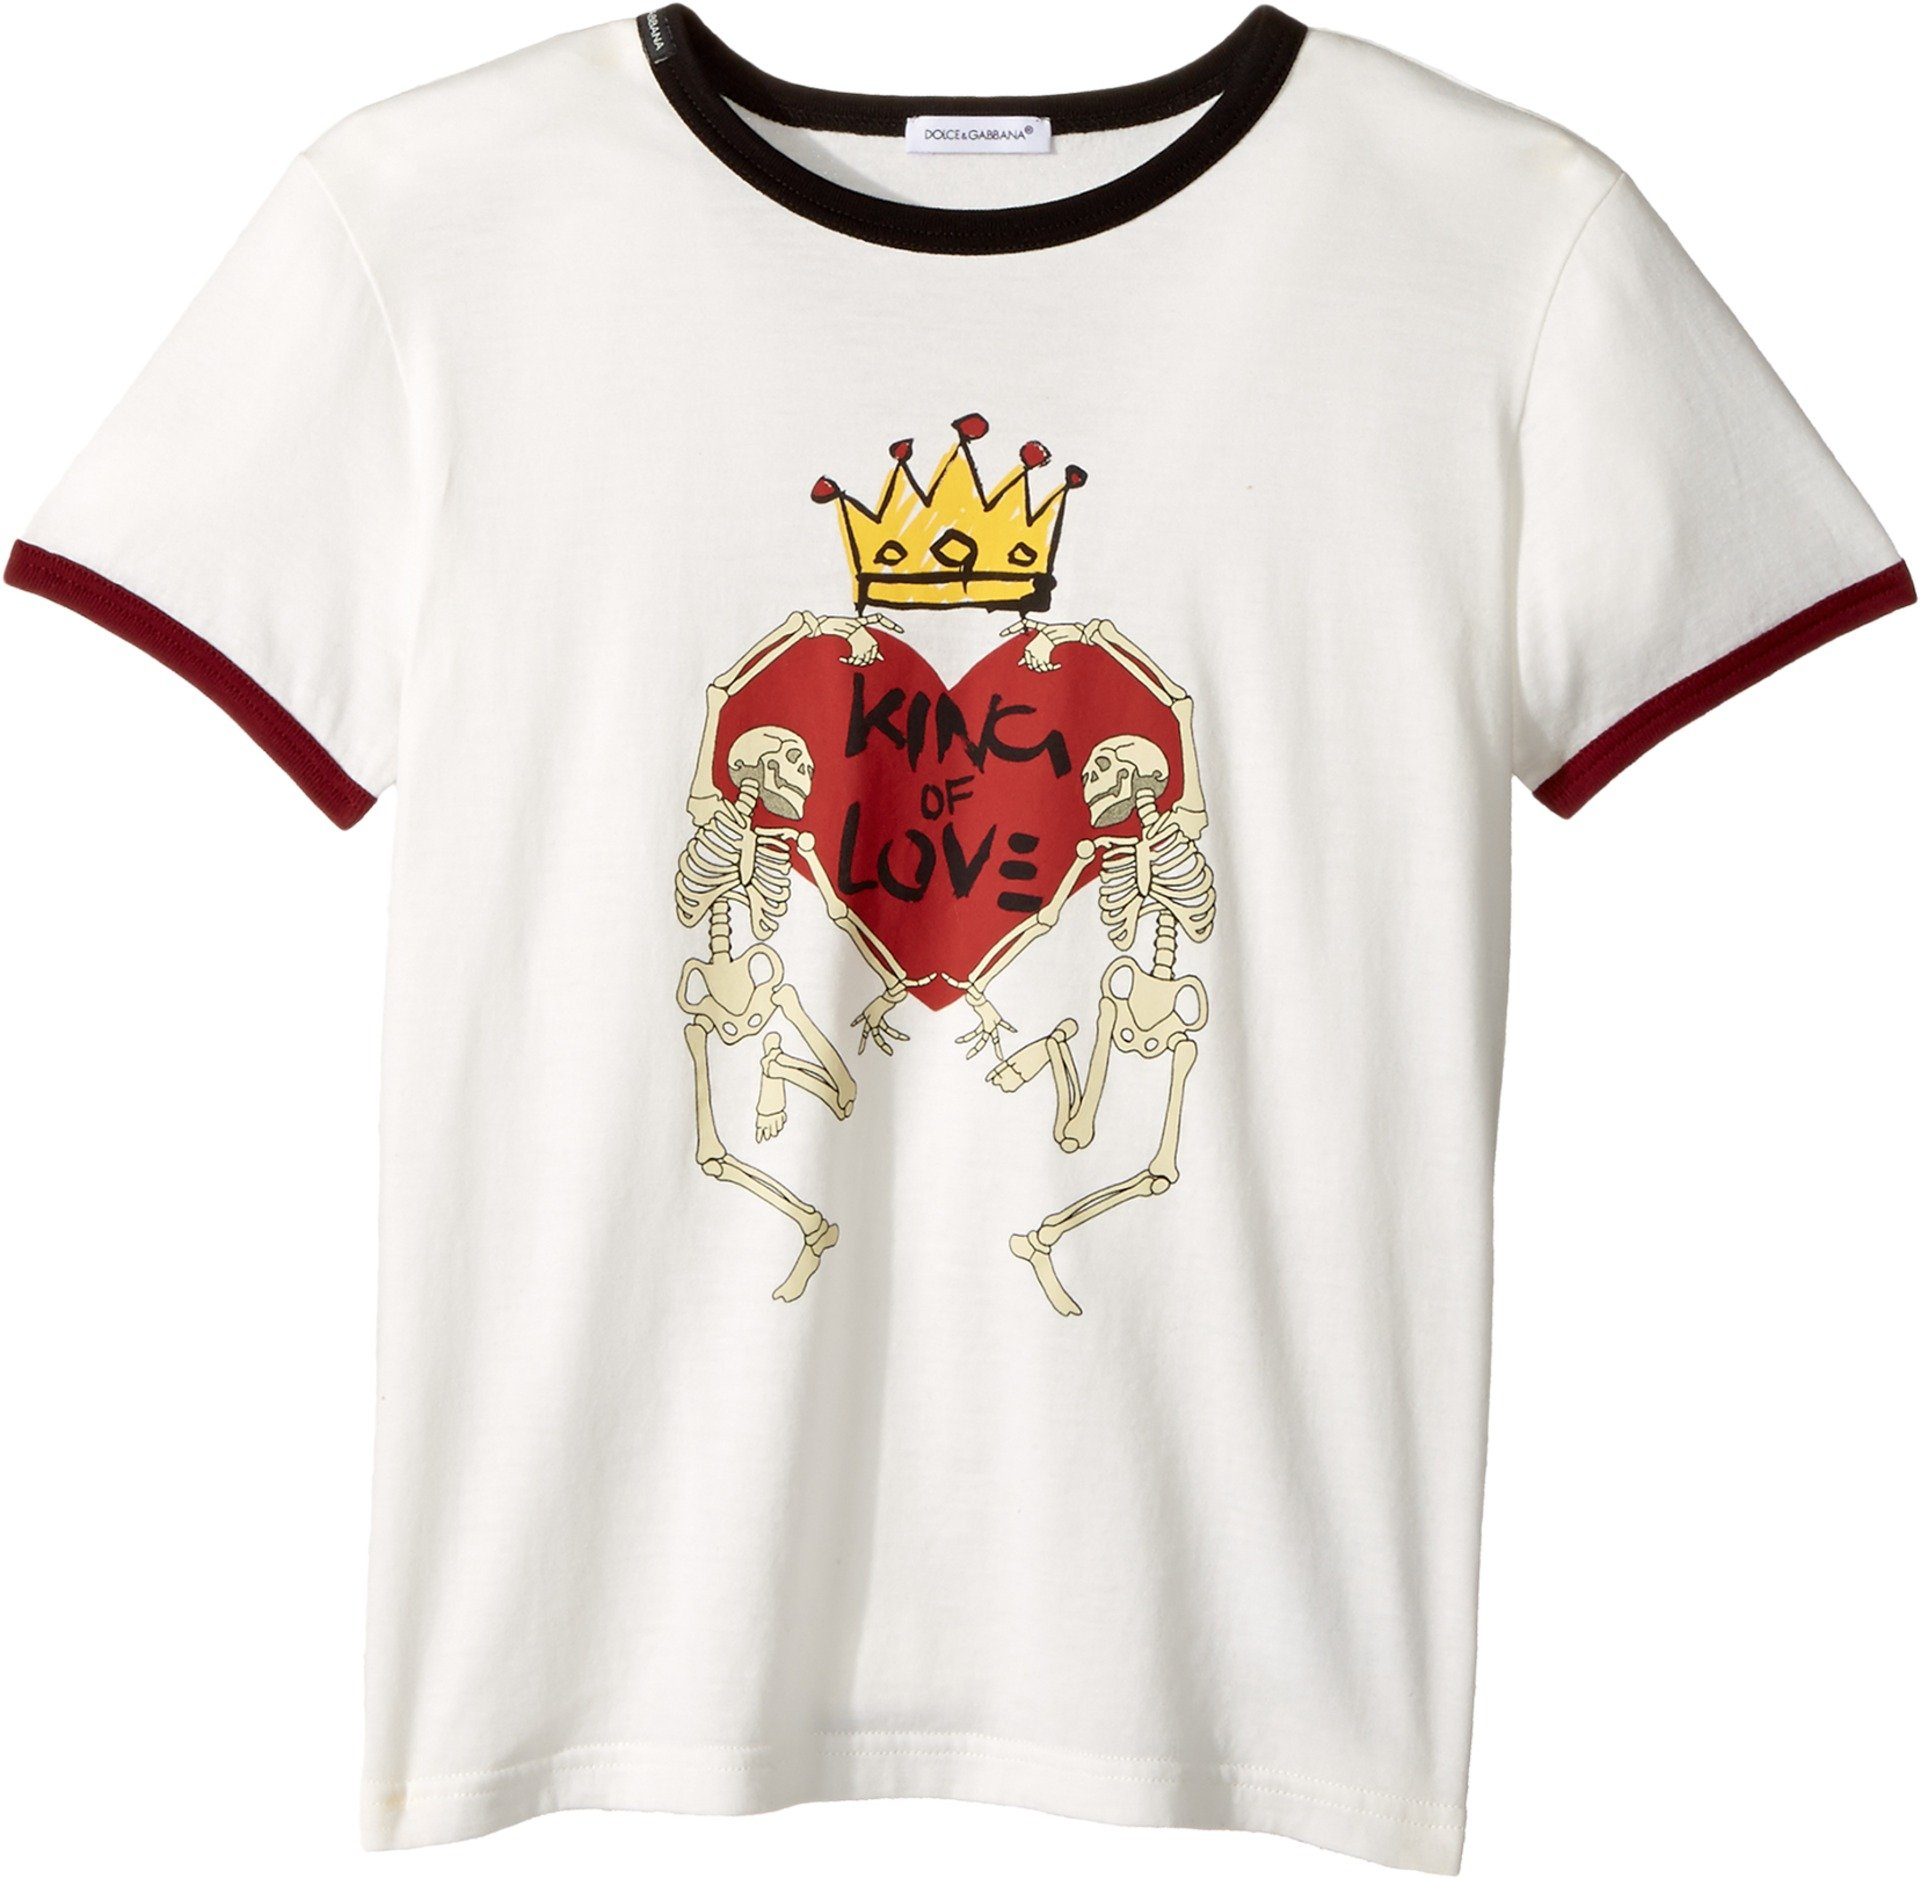 Dolce & Gabbana Kids  Baby Boy's King of Love T-Shirt (Toddler/Little Kids) White Print 6 by Dolce & Gabbana